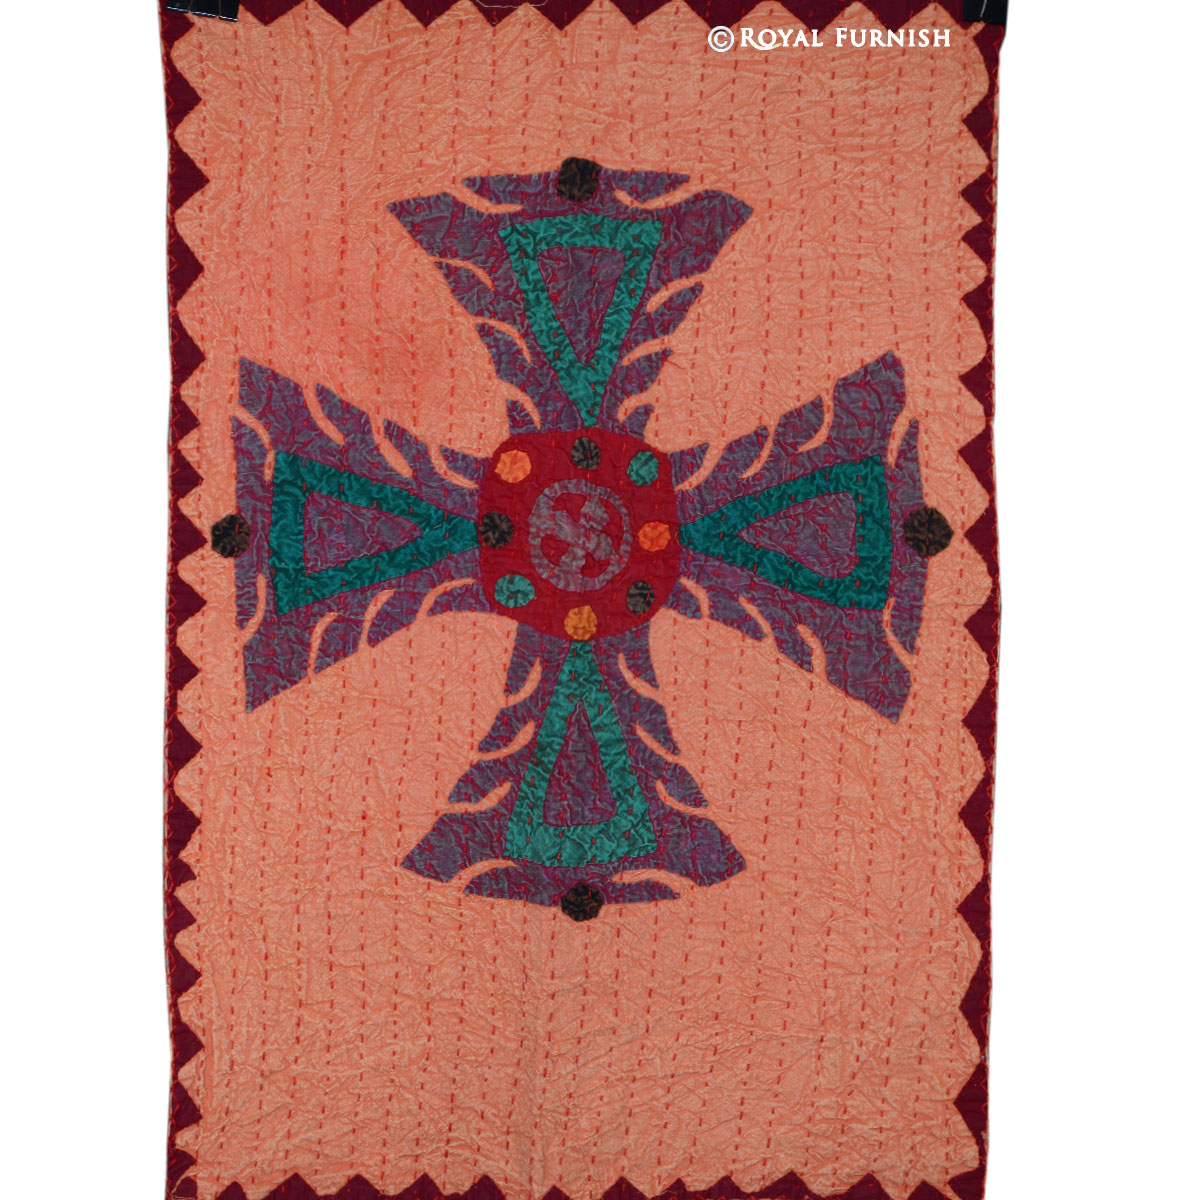 Vintage Patchwork Knights Templar Hand Stitched Fabric